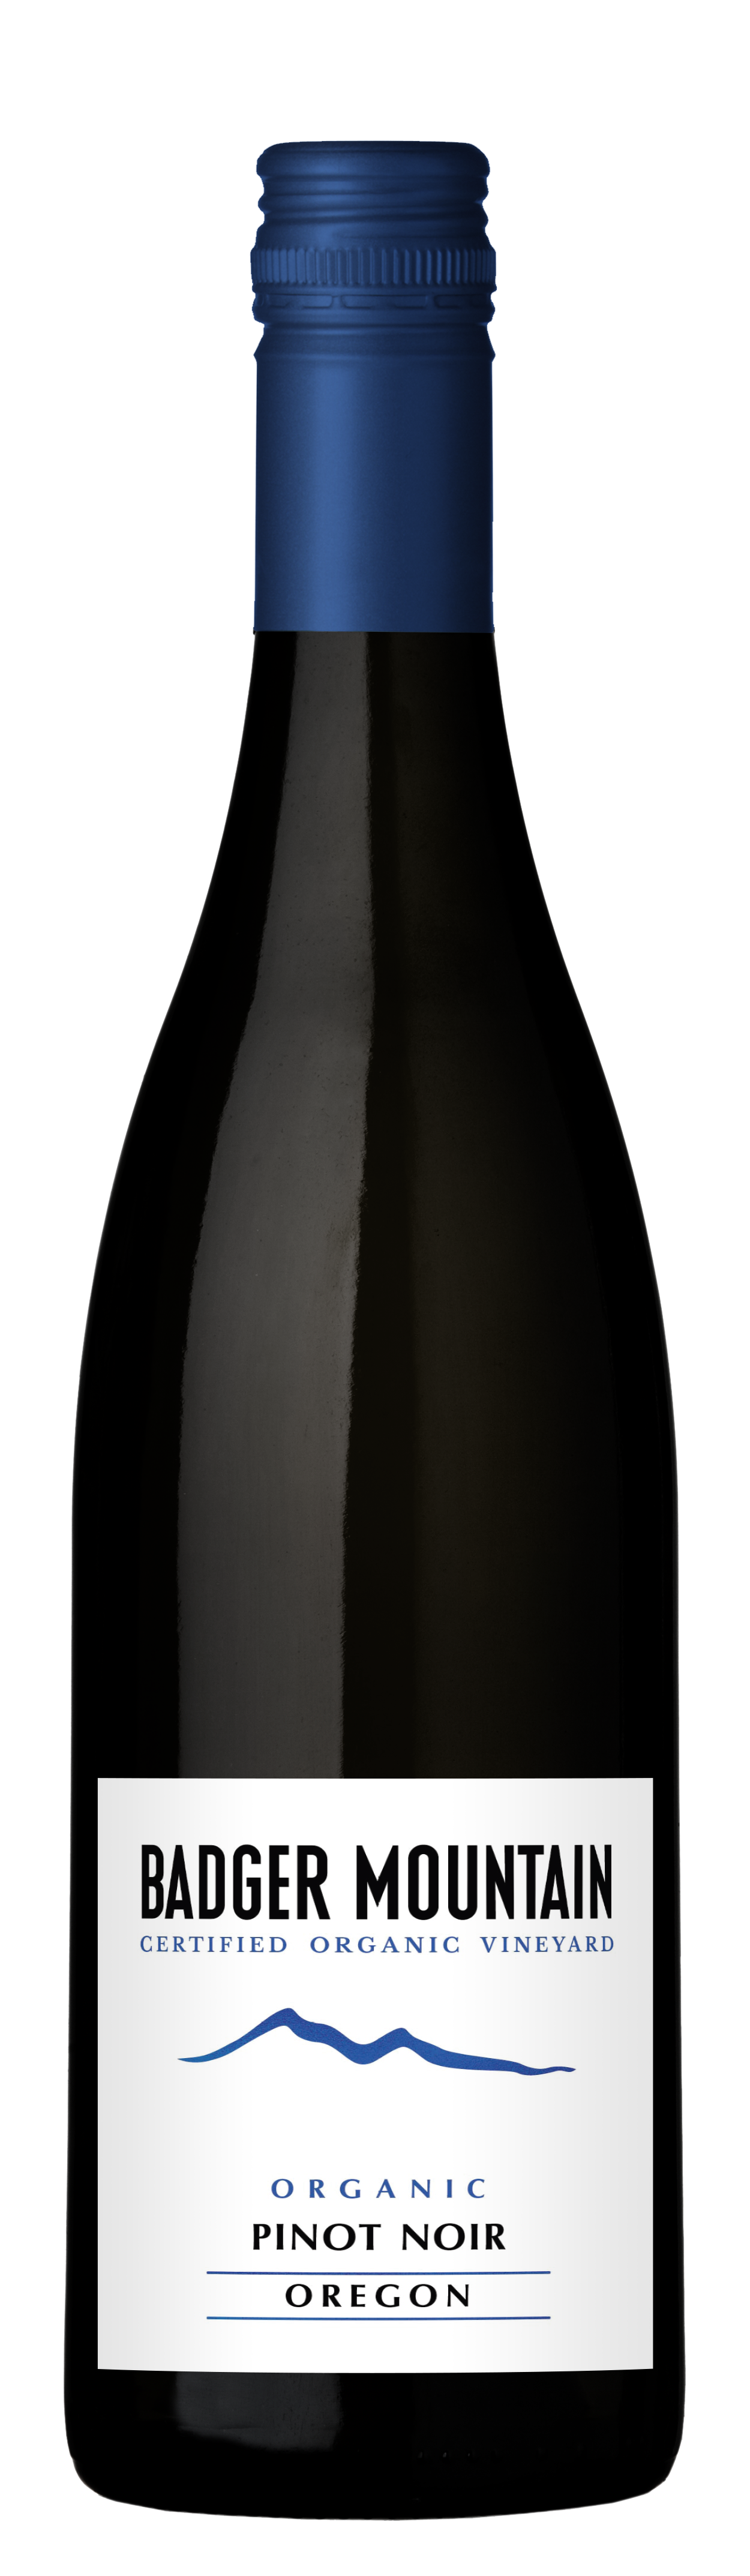 New Release: 2020 Badger Mountain Organic Pinot Noir